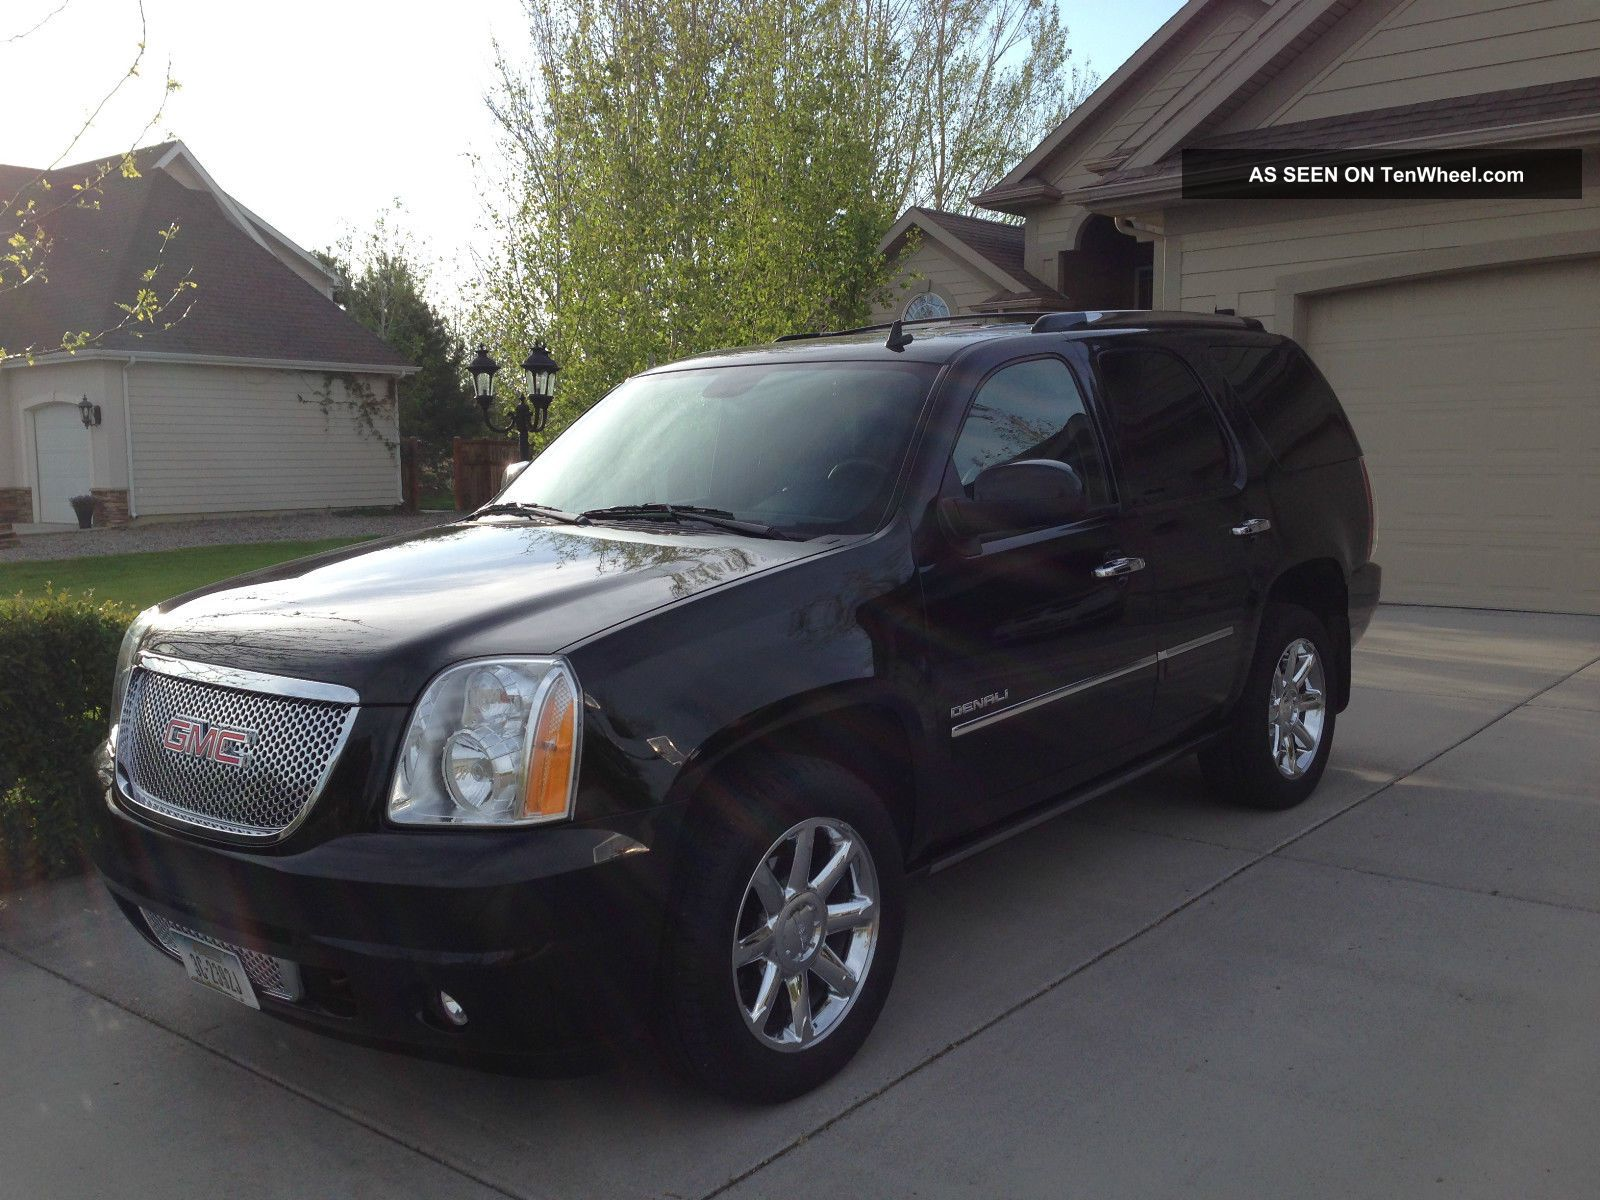 2011 Gmc Yukon Denali Black Yukon photo